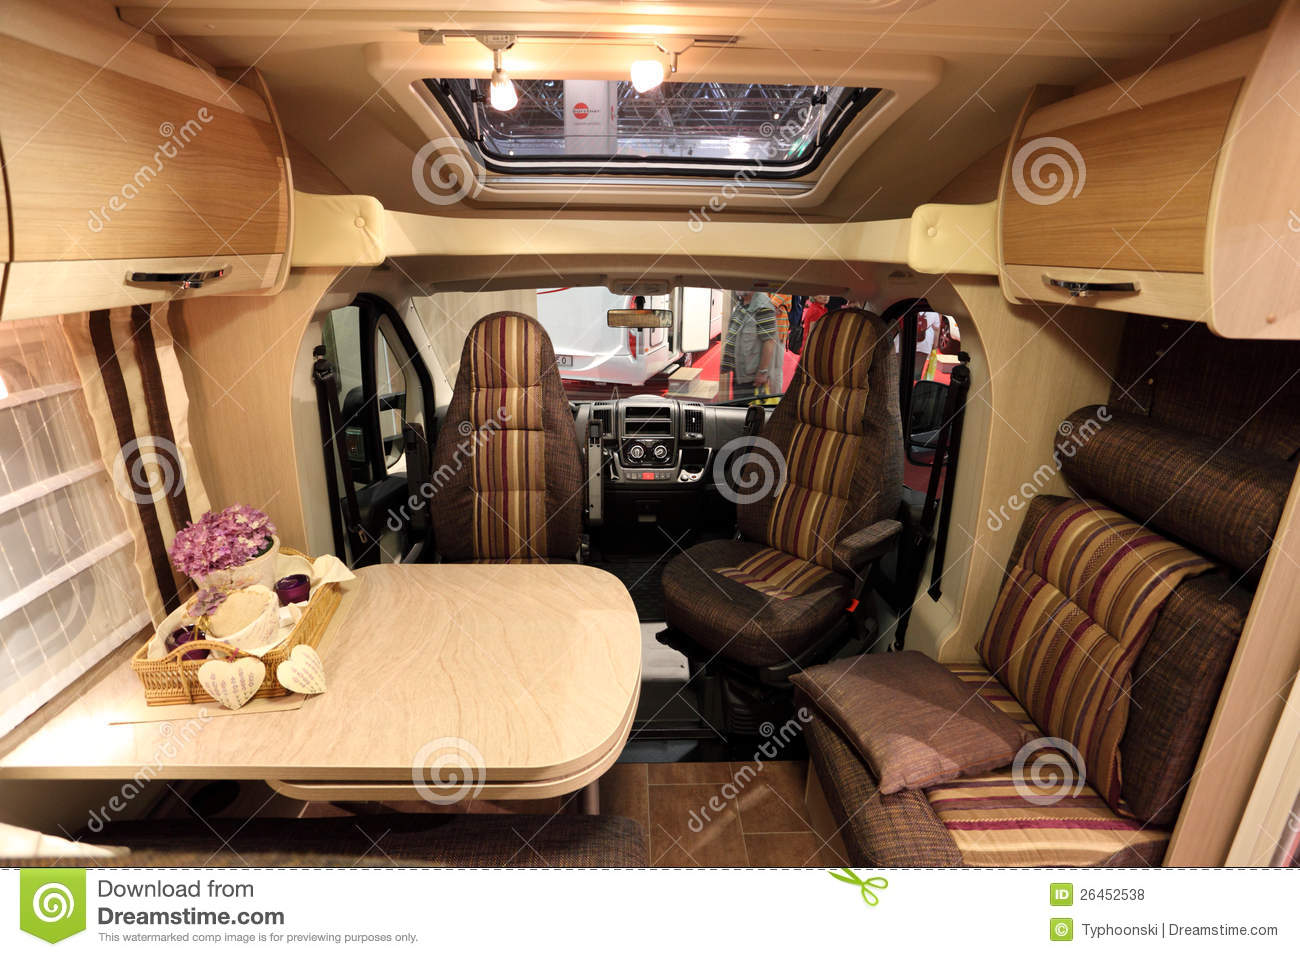 How To Decorate A Trailer Home Int 233 Rieur D Un Motorhome Moderne Photo Stock 233 Ditorial